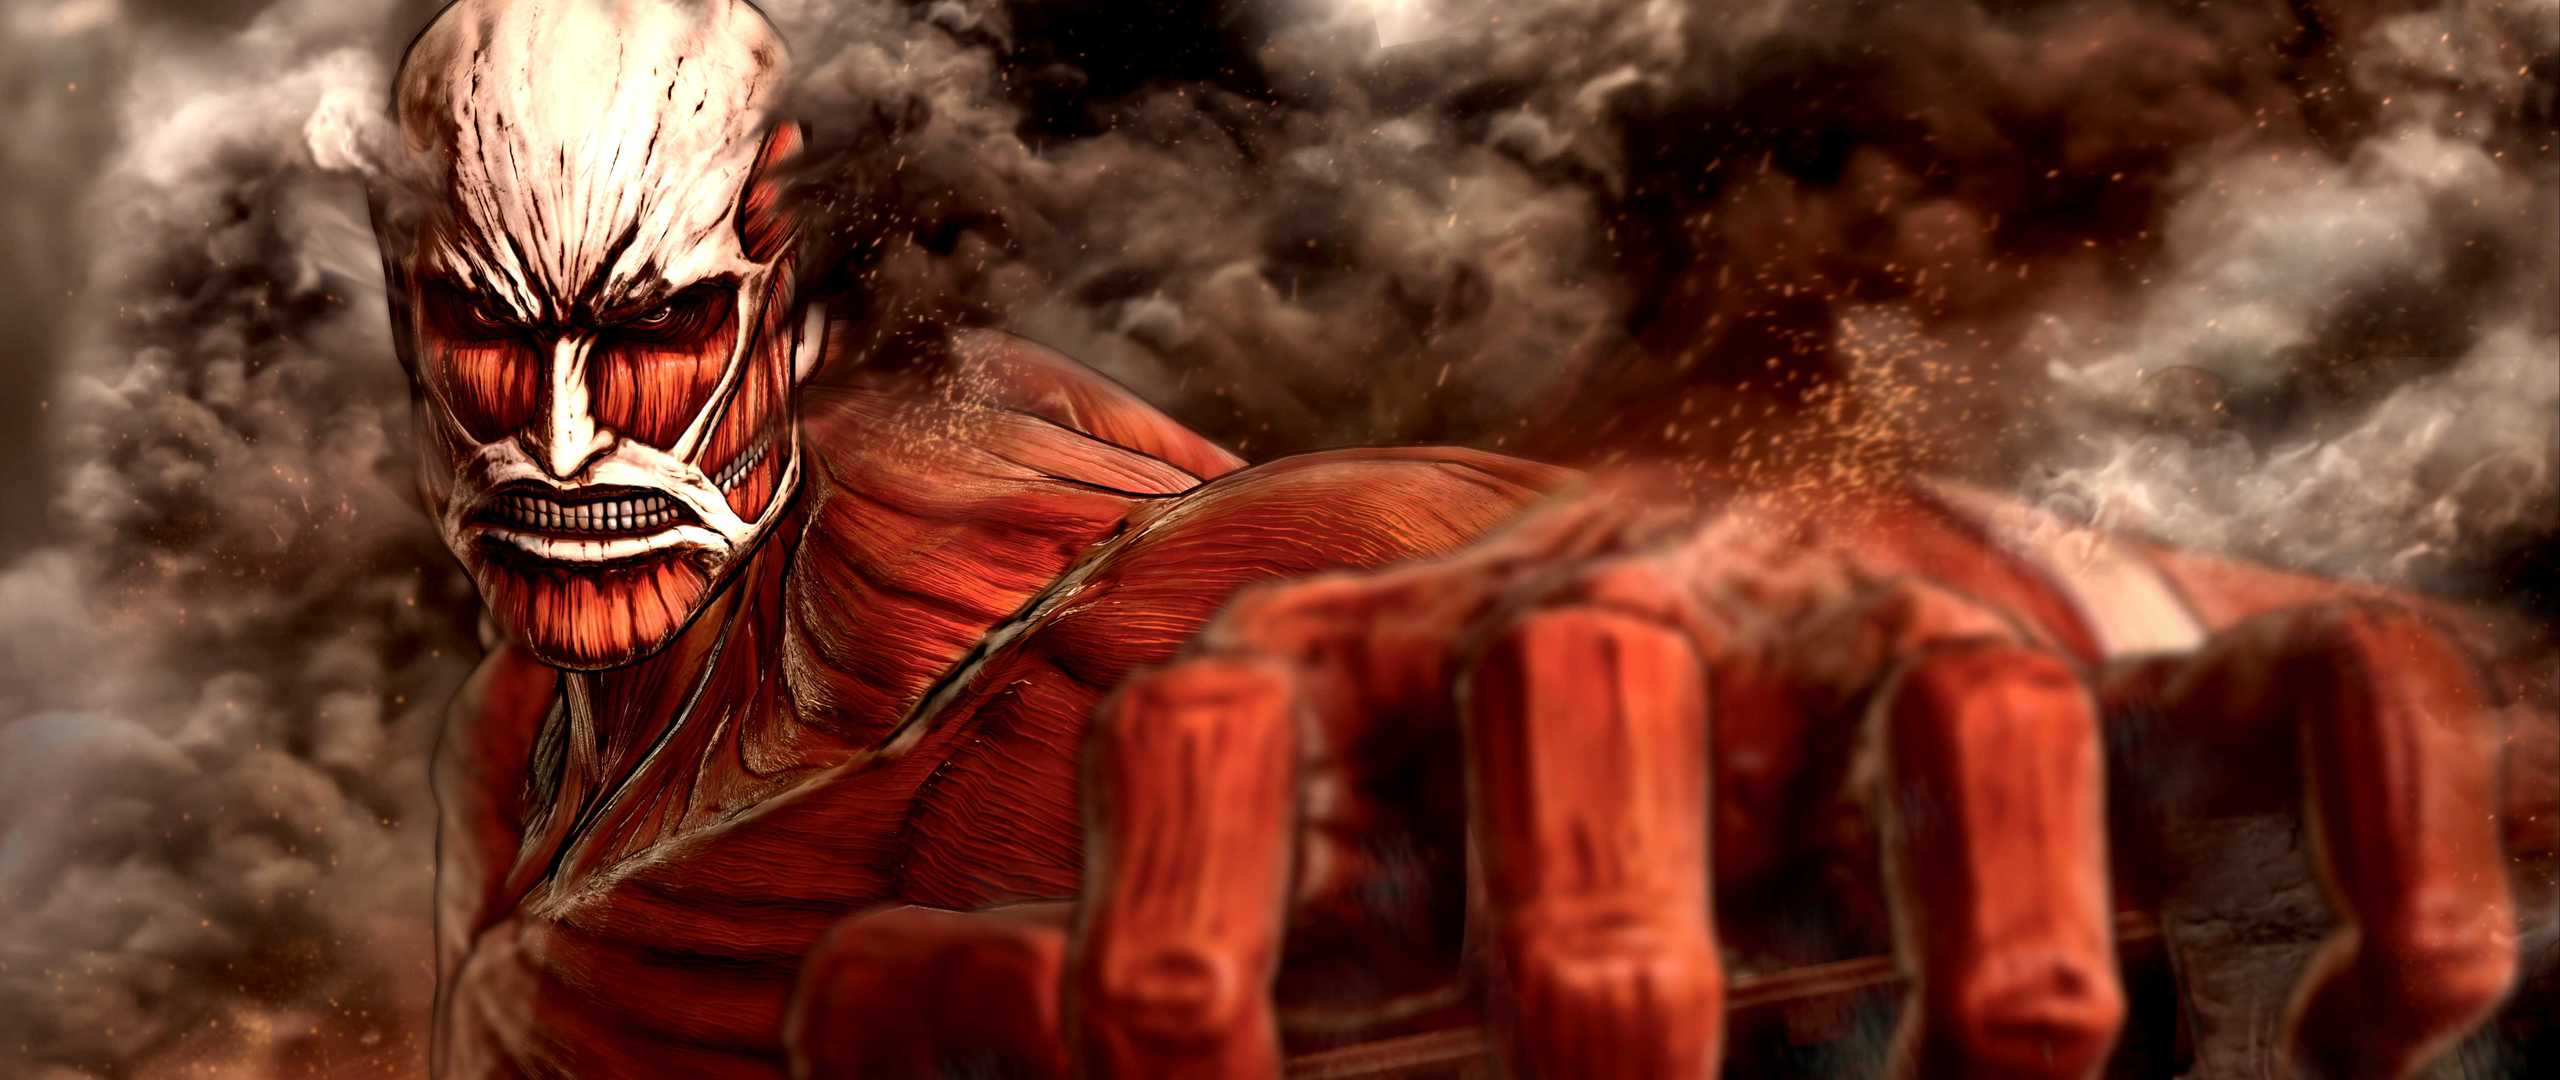 Attack On Titan 2233099 Hd Wallpaper Backgrounds Download